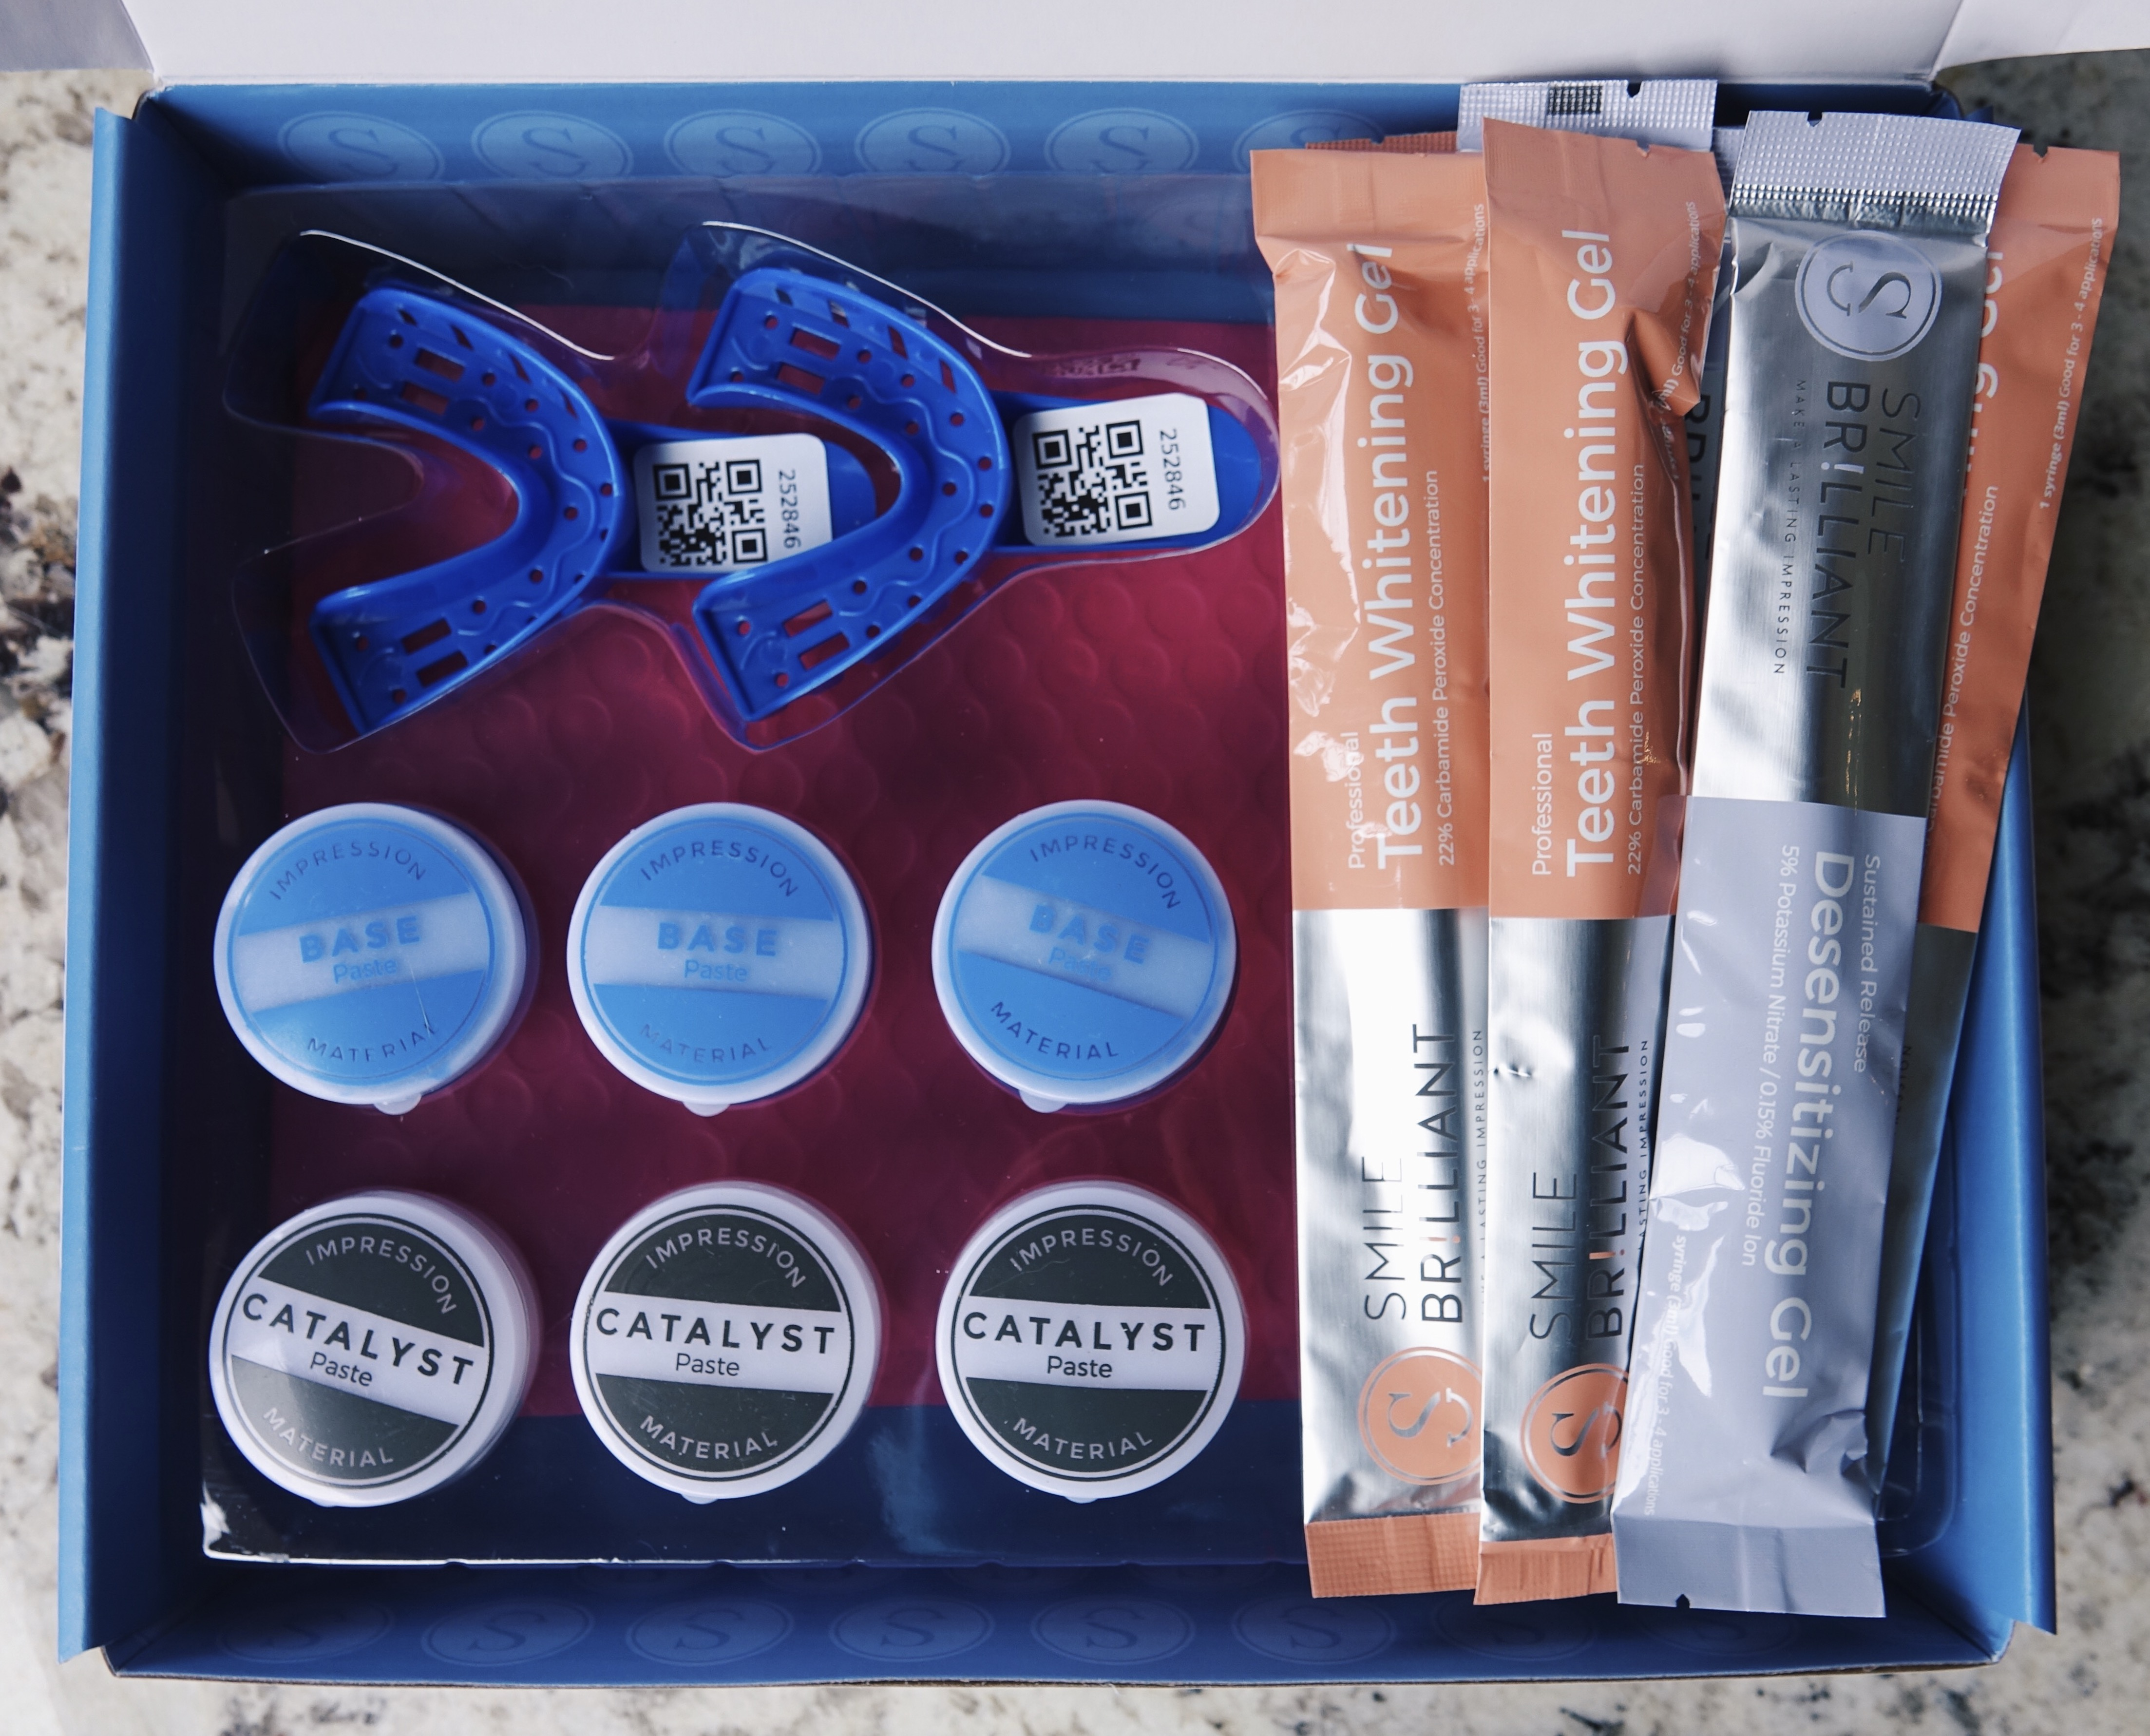 teeth whitening before afters, smile brilliant before afters, best at home whiteners, whitening kits review